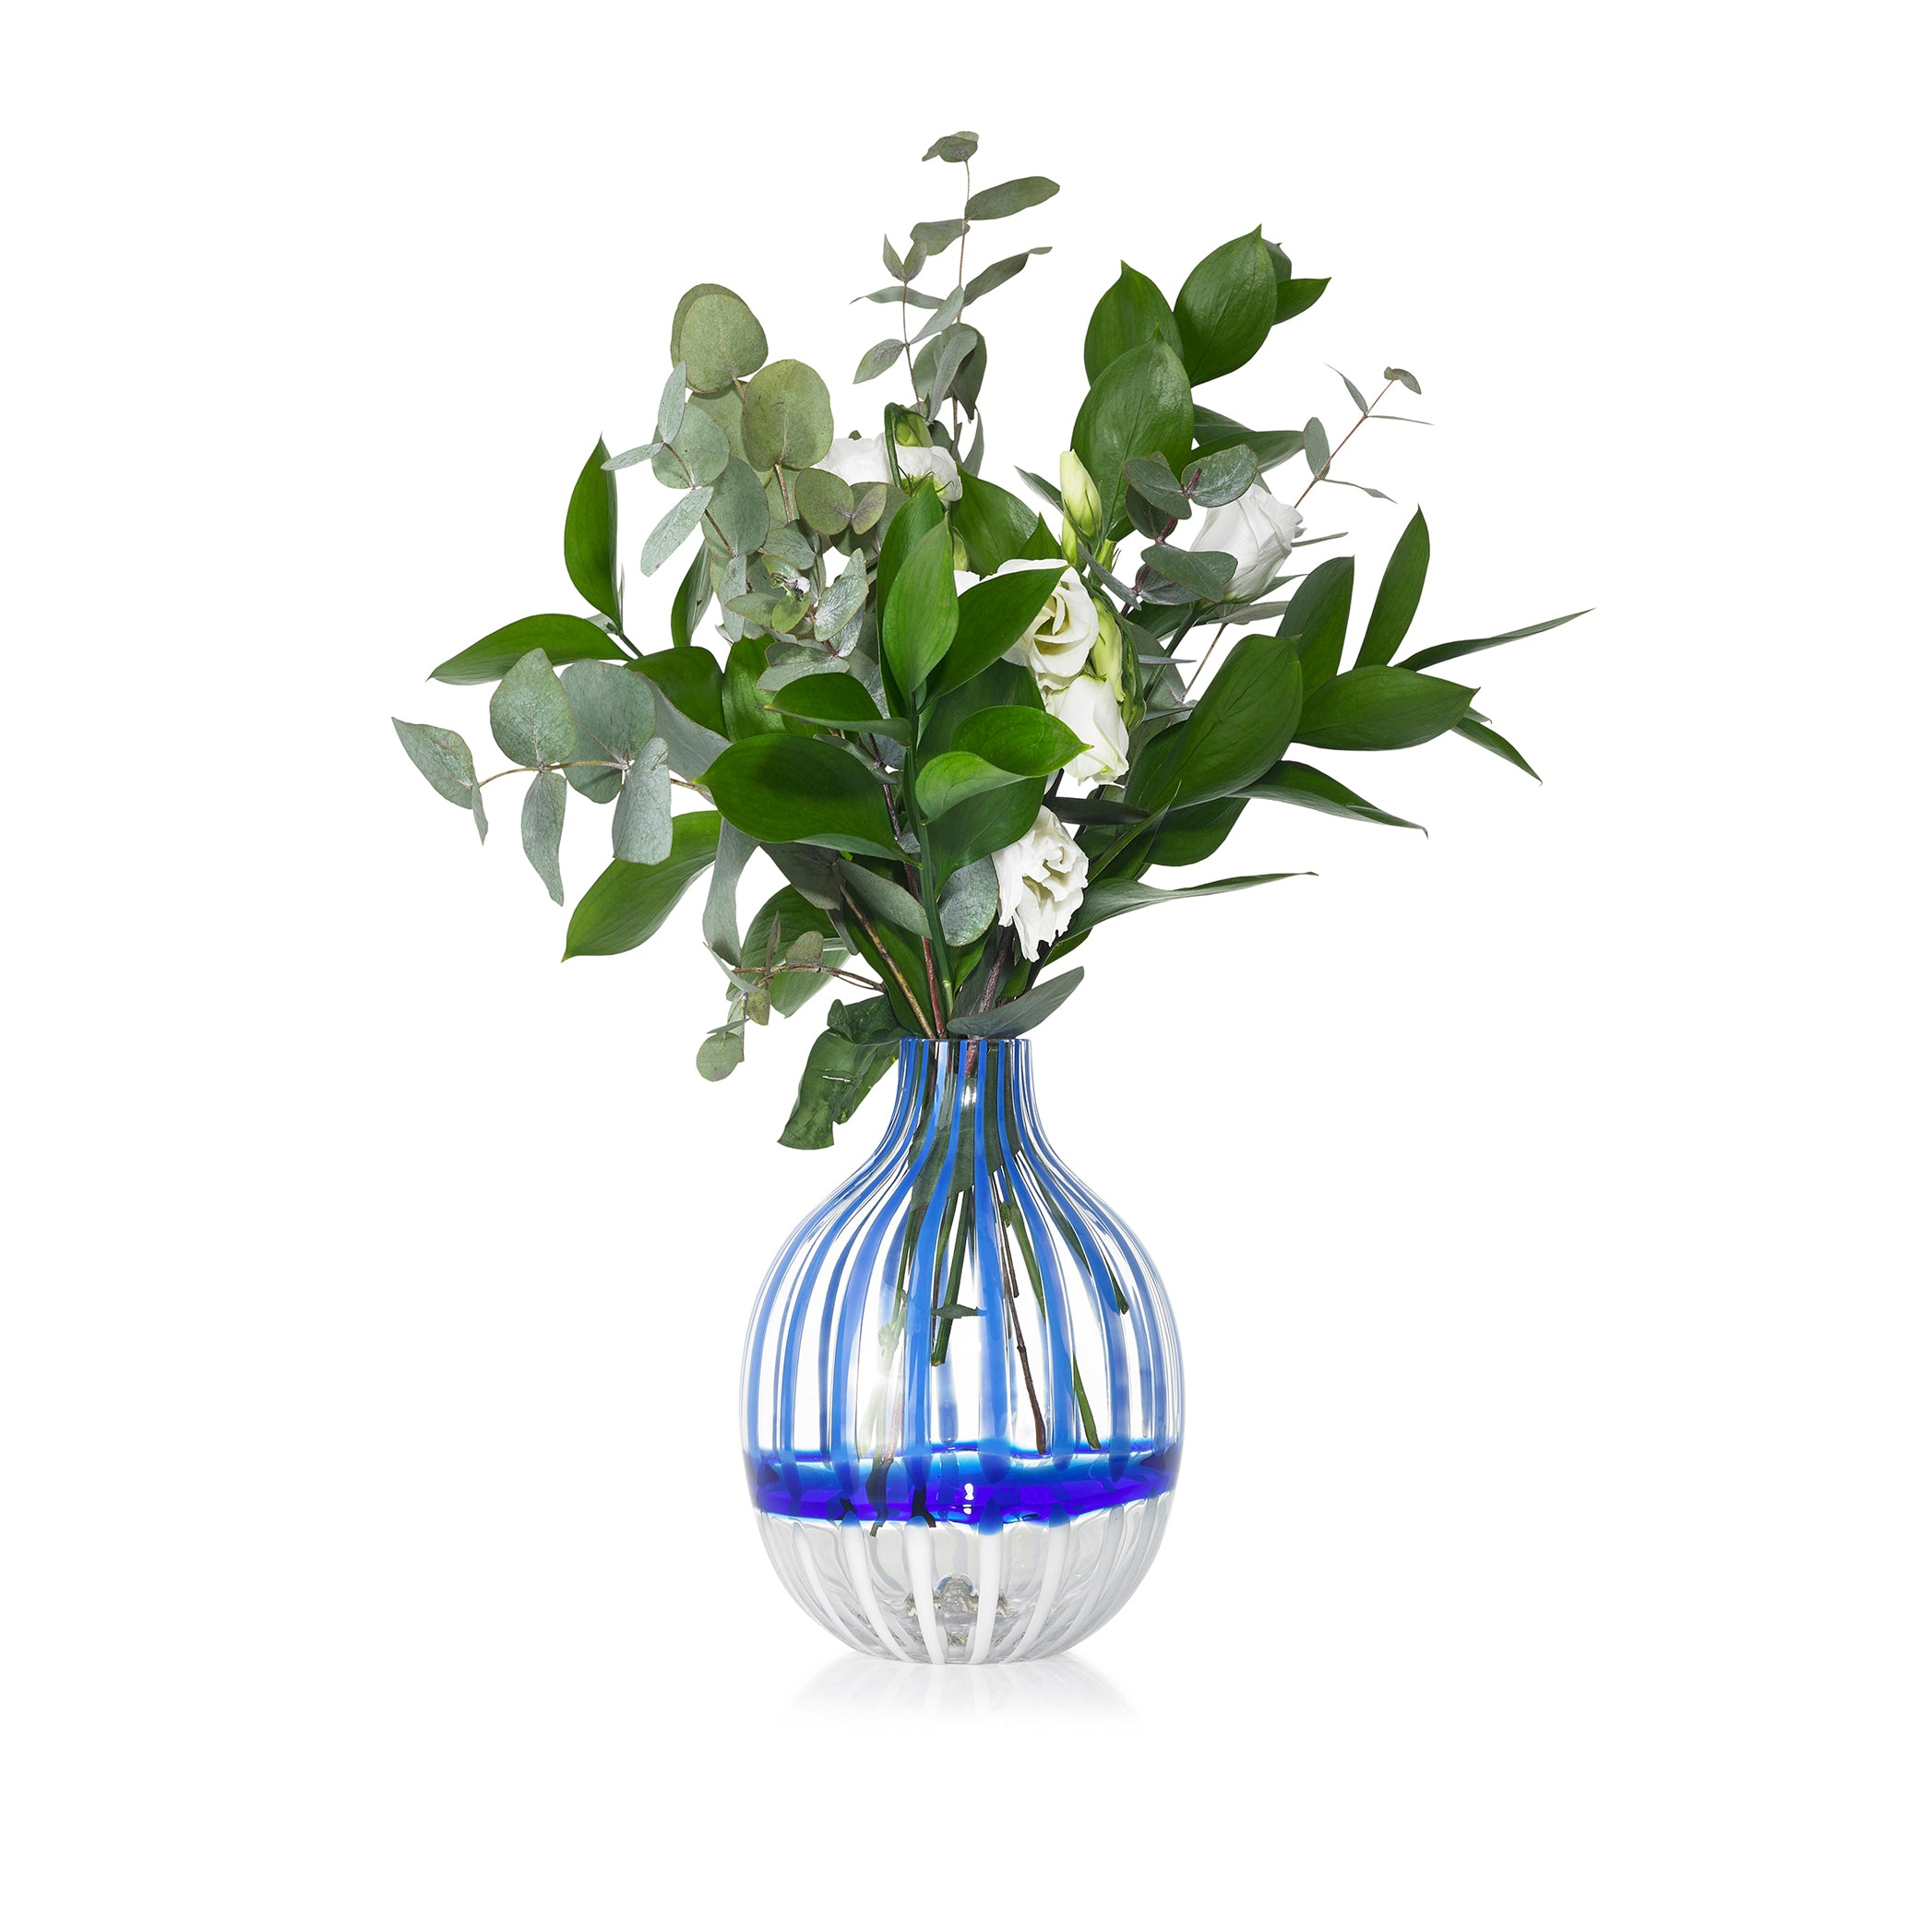 Handblown Double Stripe Glass Vase in Midnight Blue & White